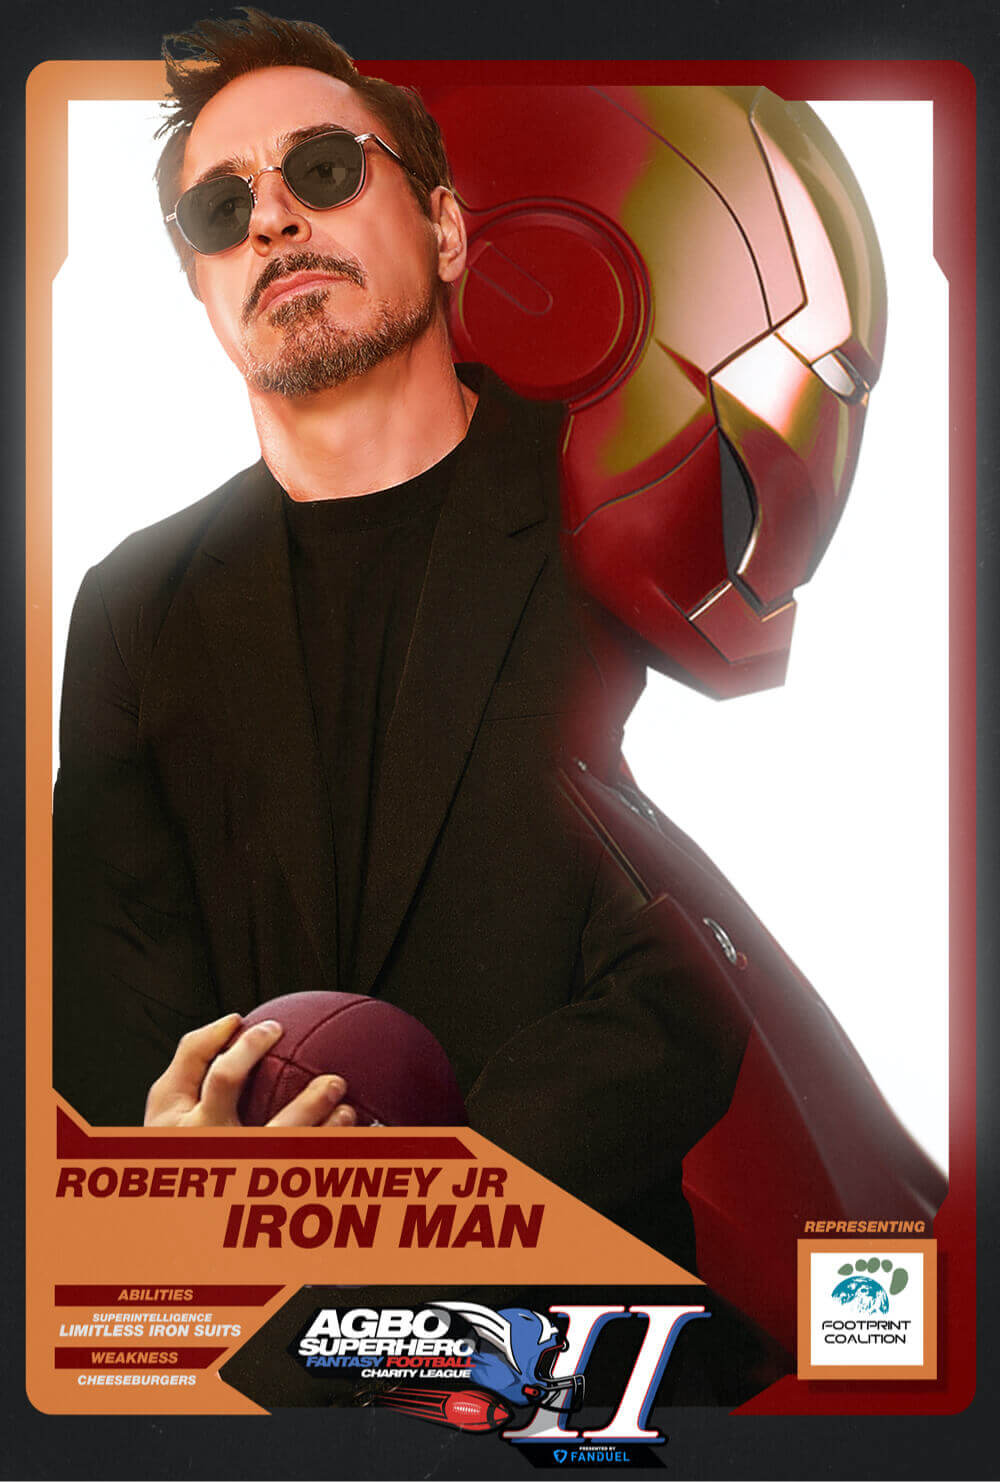 Team Downey Jr.